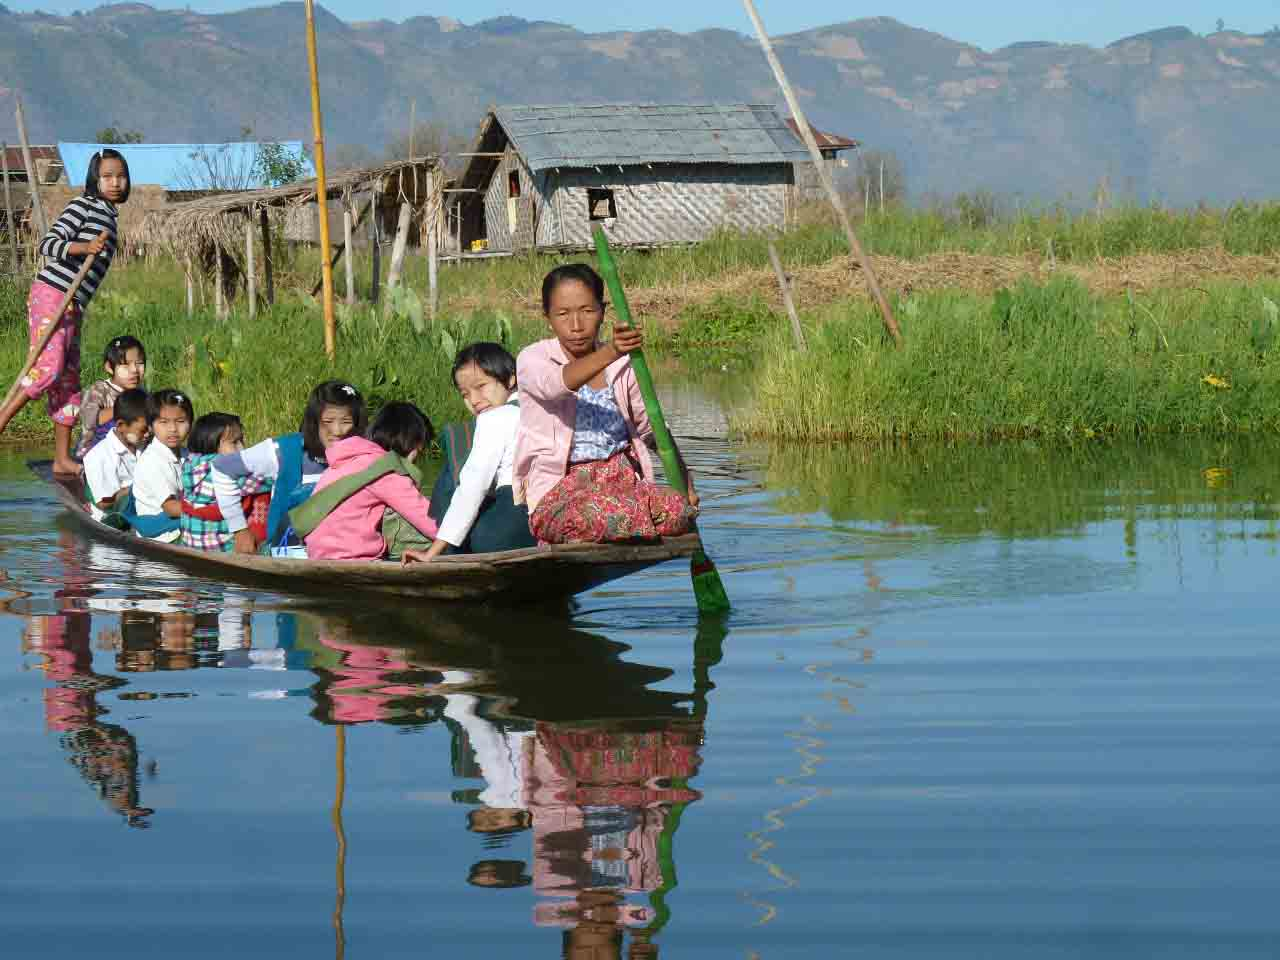 Amberlair Crowdsourced Crowdfunded Boutique Hotel Myanmar - On the Inle Lake in a long boat